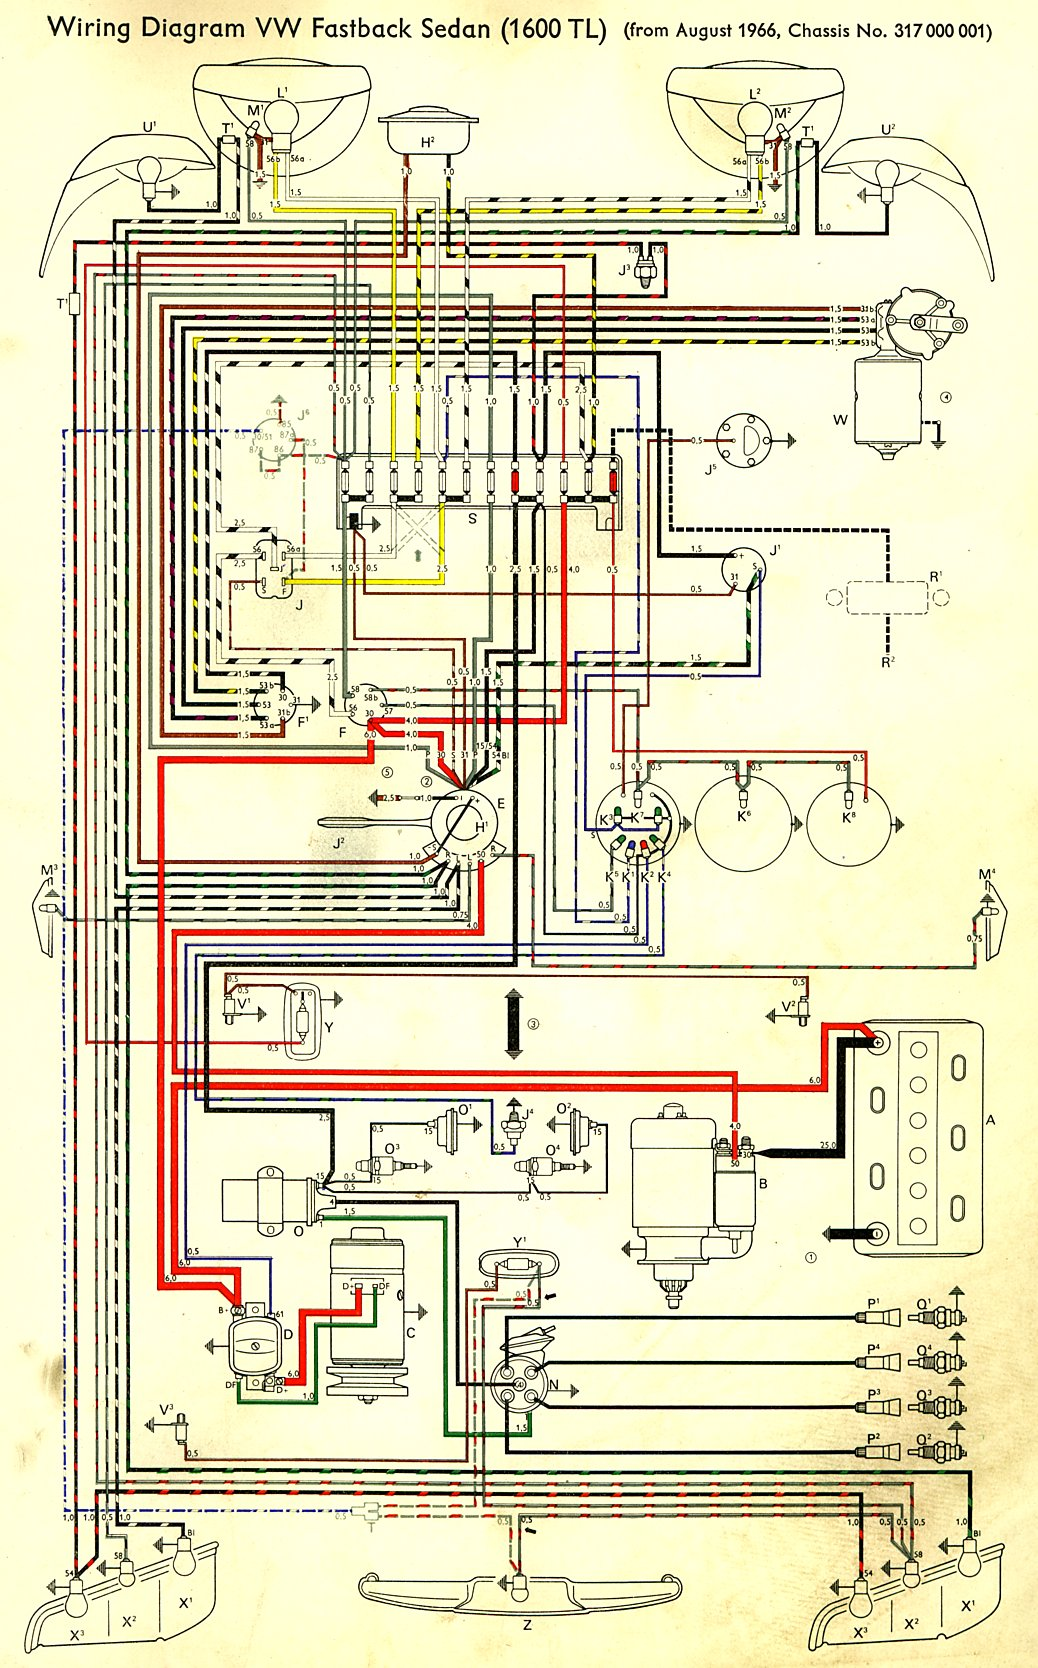 thesamba.com :: type 3 wiring diagrams 2006 vw 2 0t engine diagram type 2 vw engine diagram #15